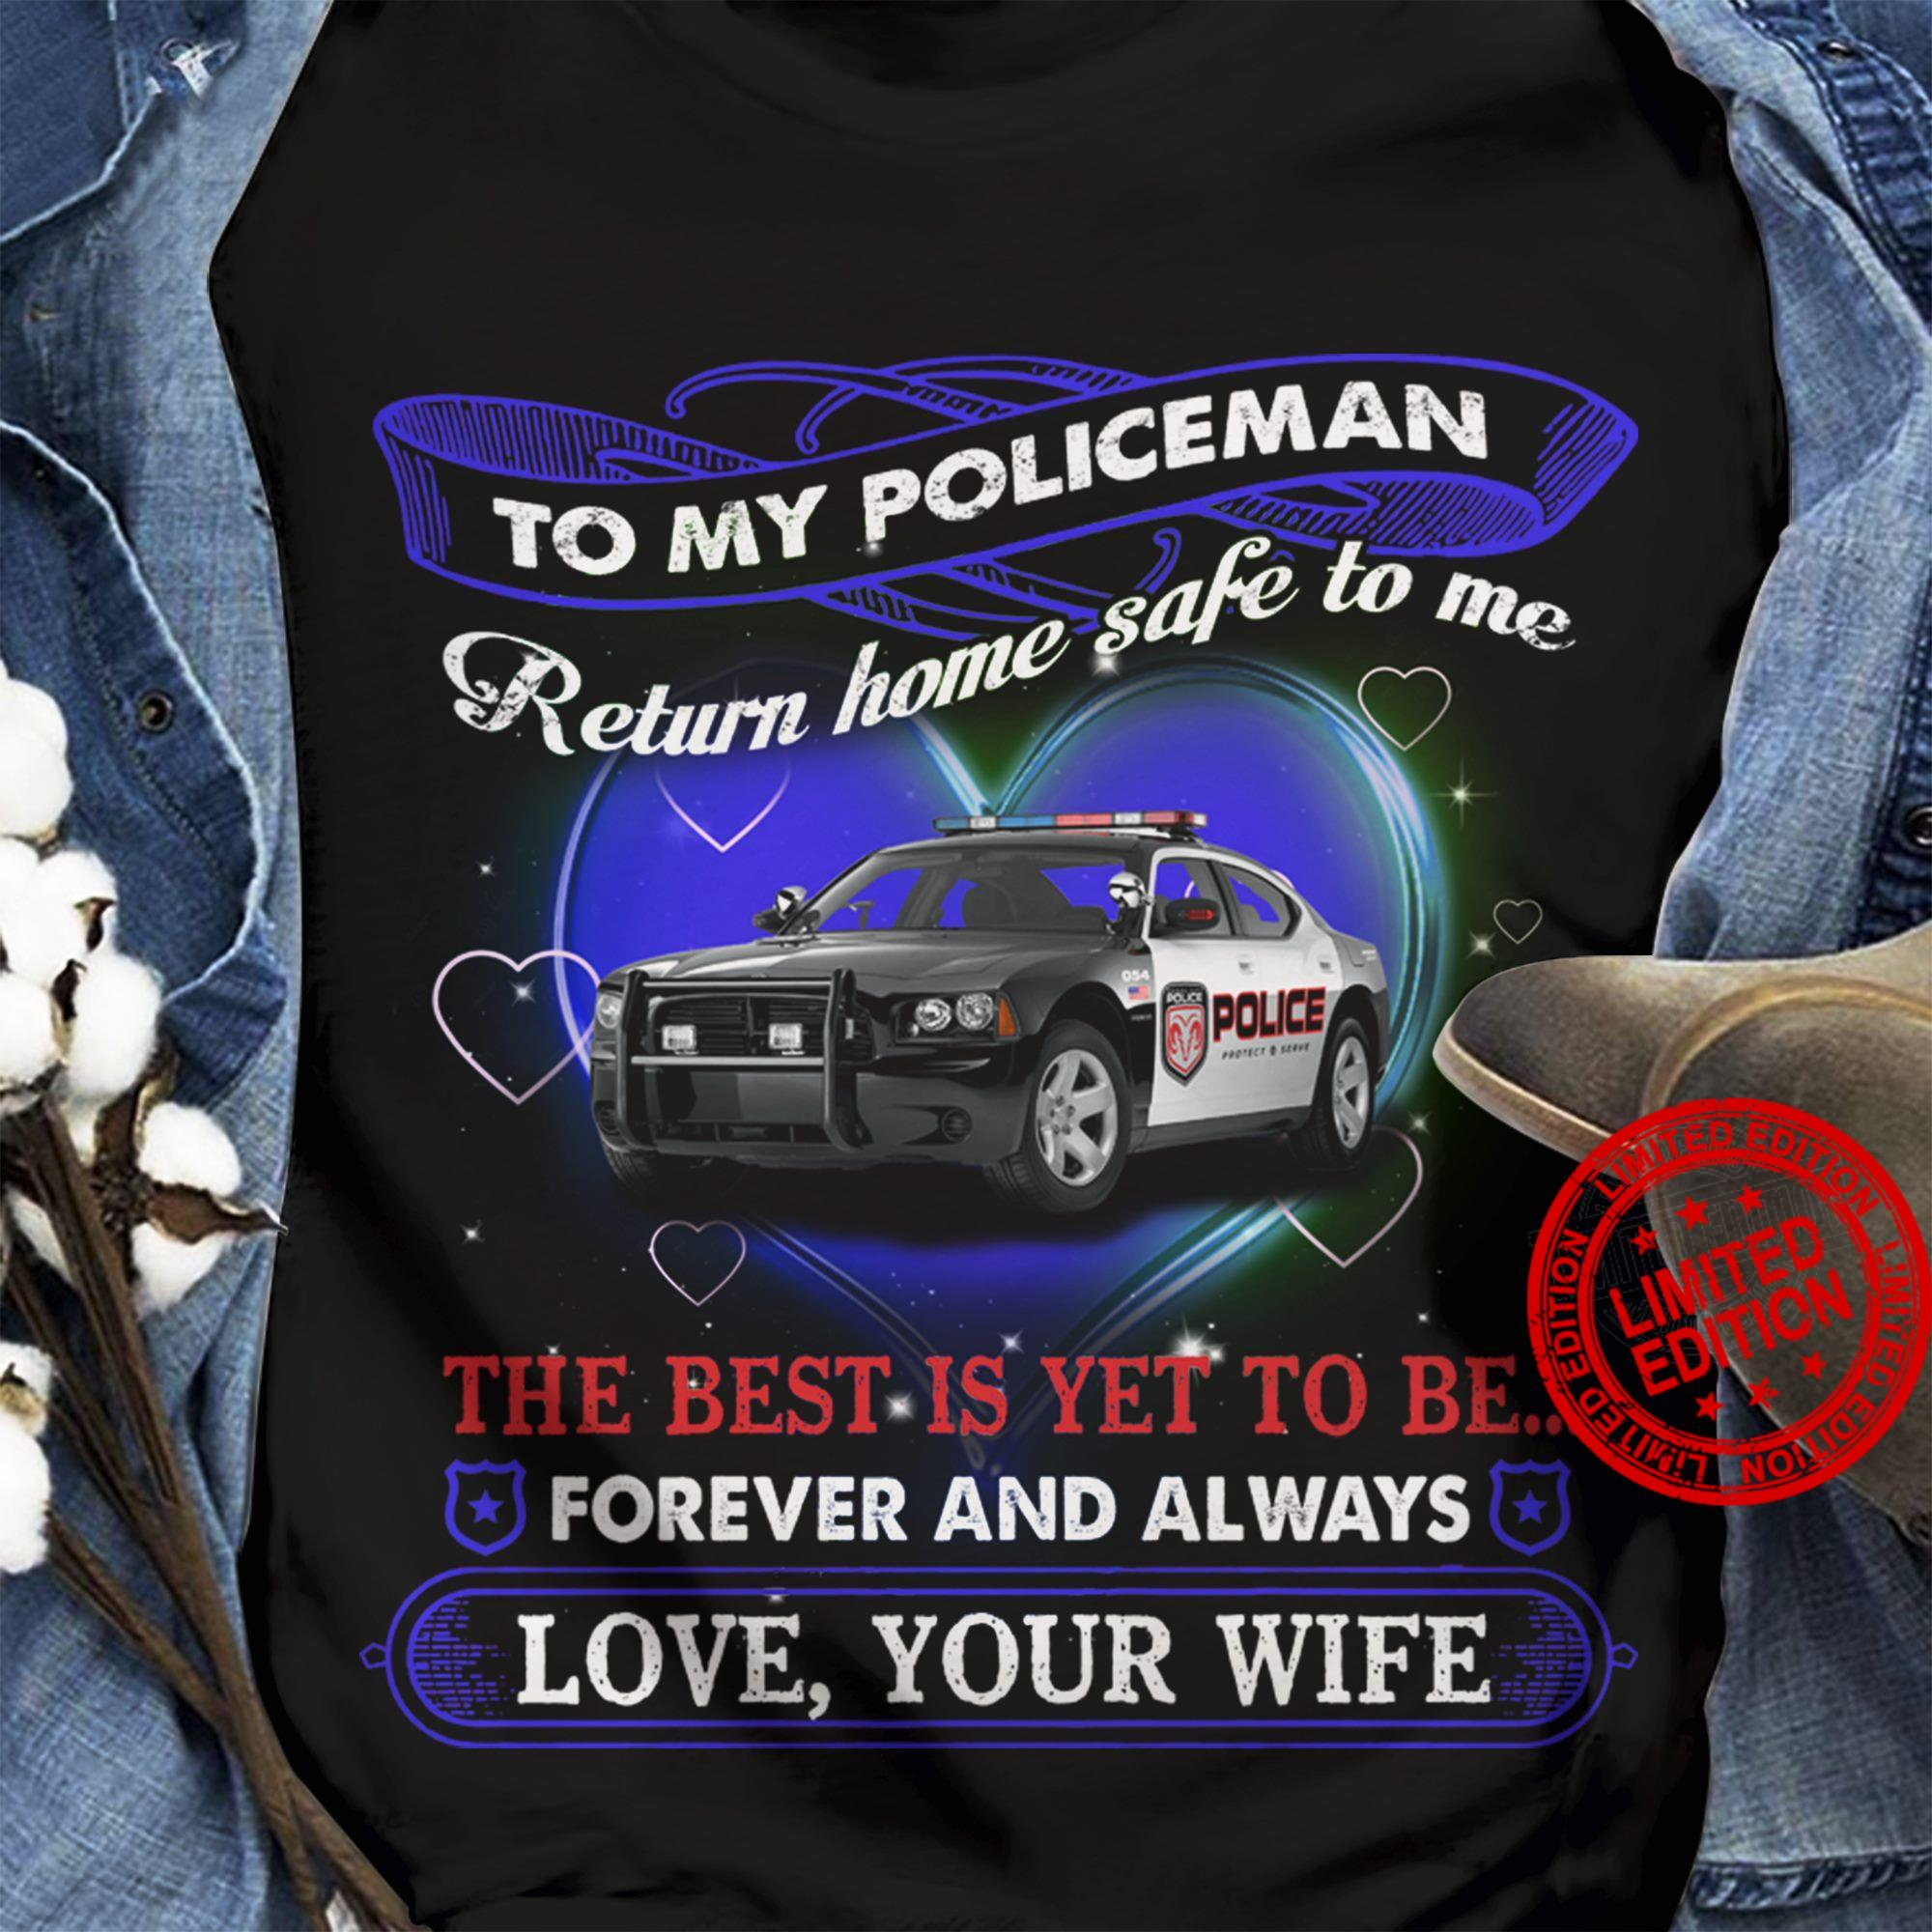 To My Policeman Return Home Safe To Me The Best Is Yet To Be Forever And Always Shirt